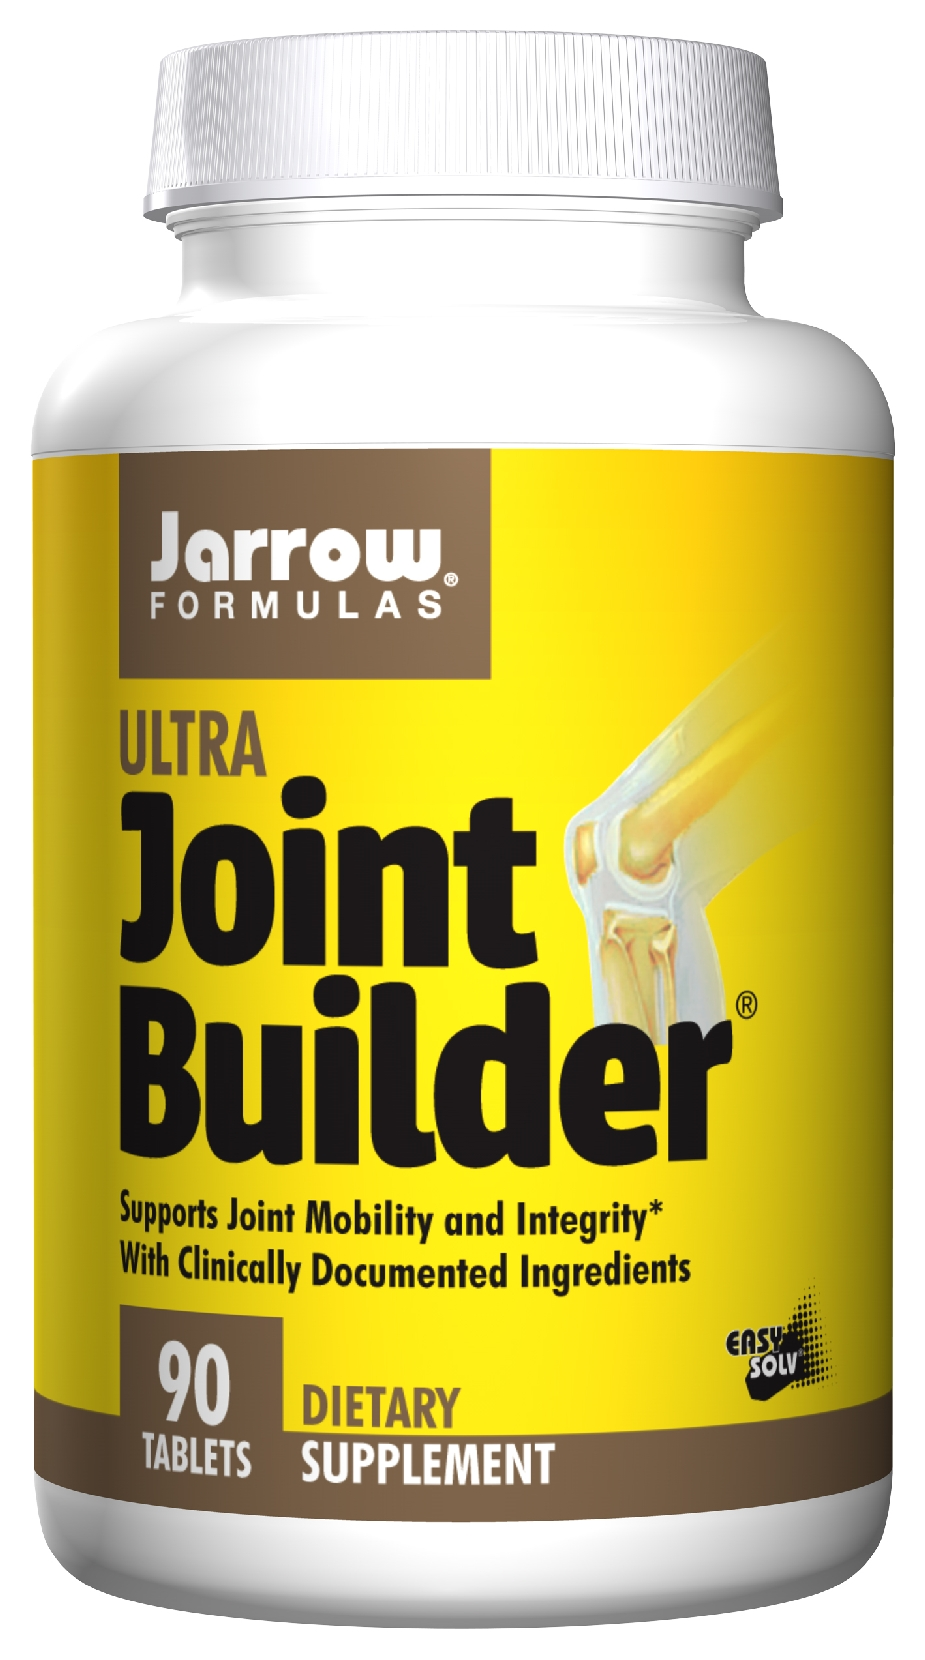 Ultra Joint Builder 90 Easy-Solv tabs by Jarrow Formulas